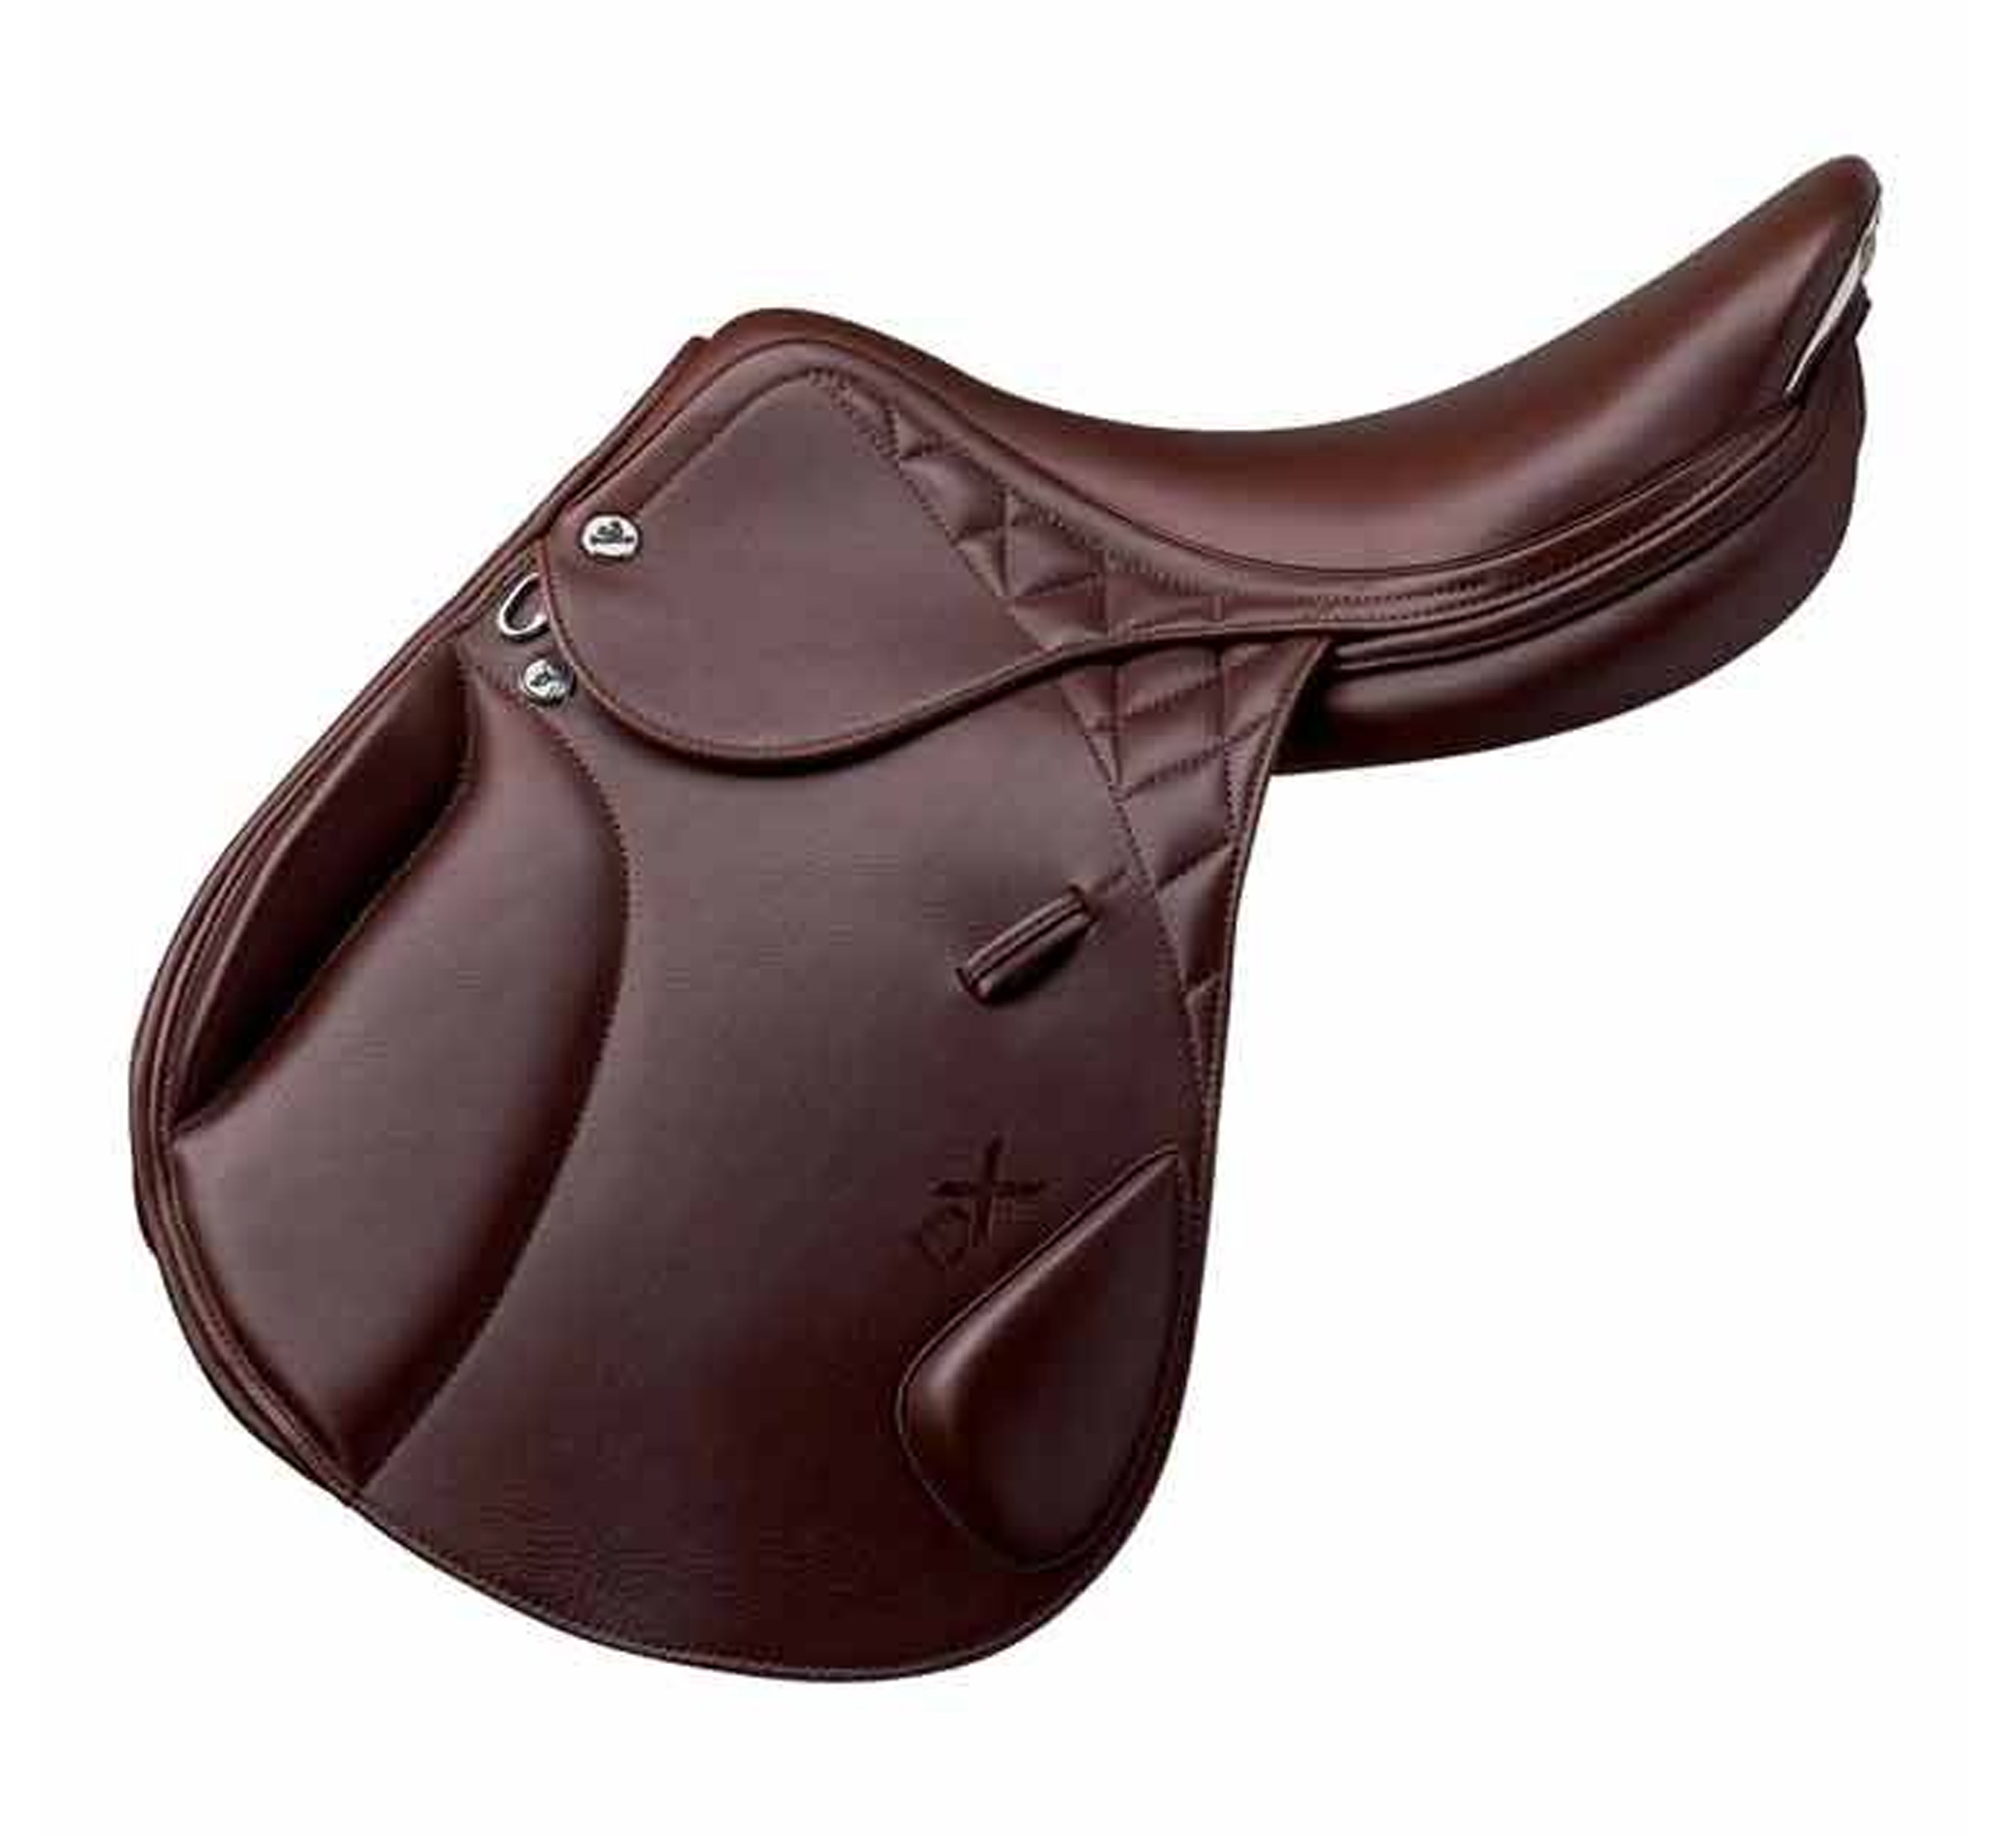 DX Saddle